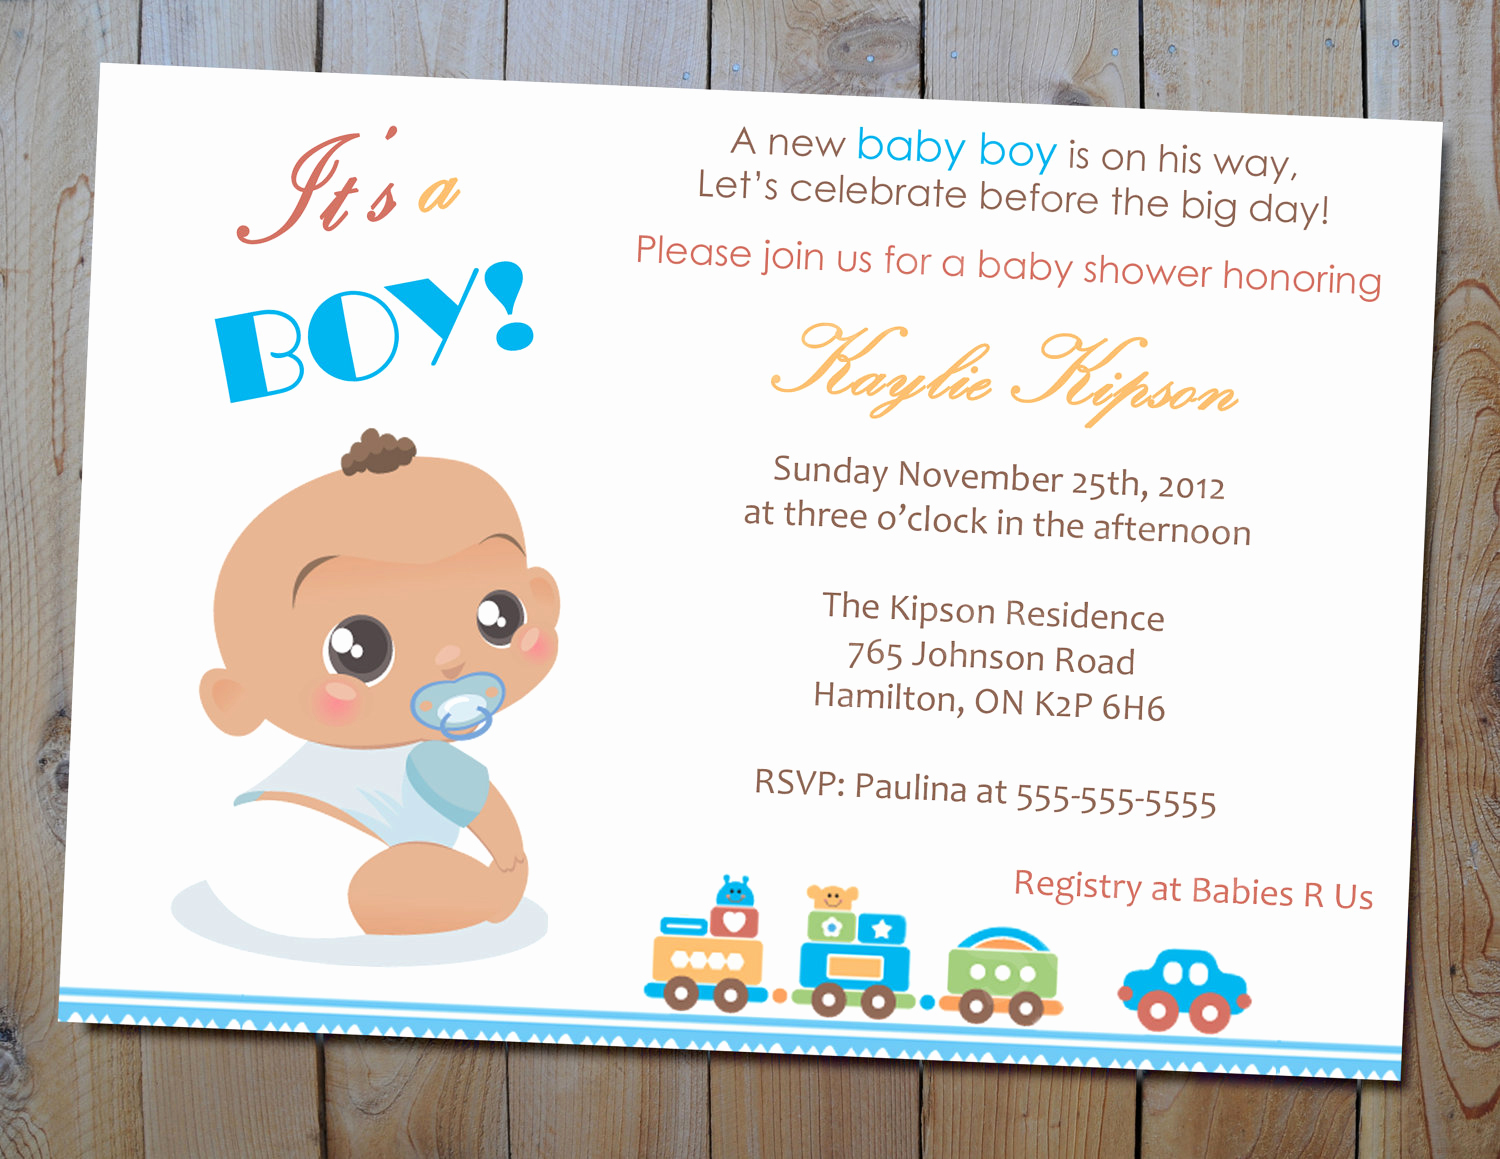 Baby Boy Invitation Ideas Awesome Baby Shower Invitations Ideas for A Boy